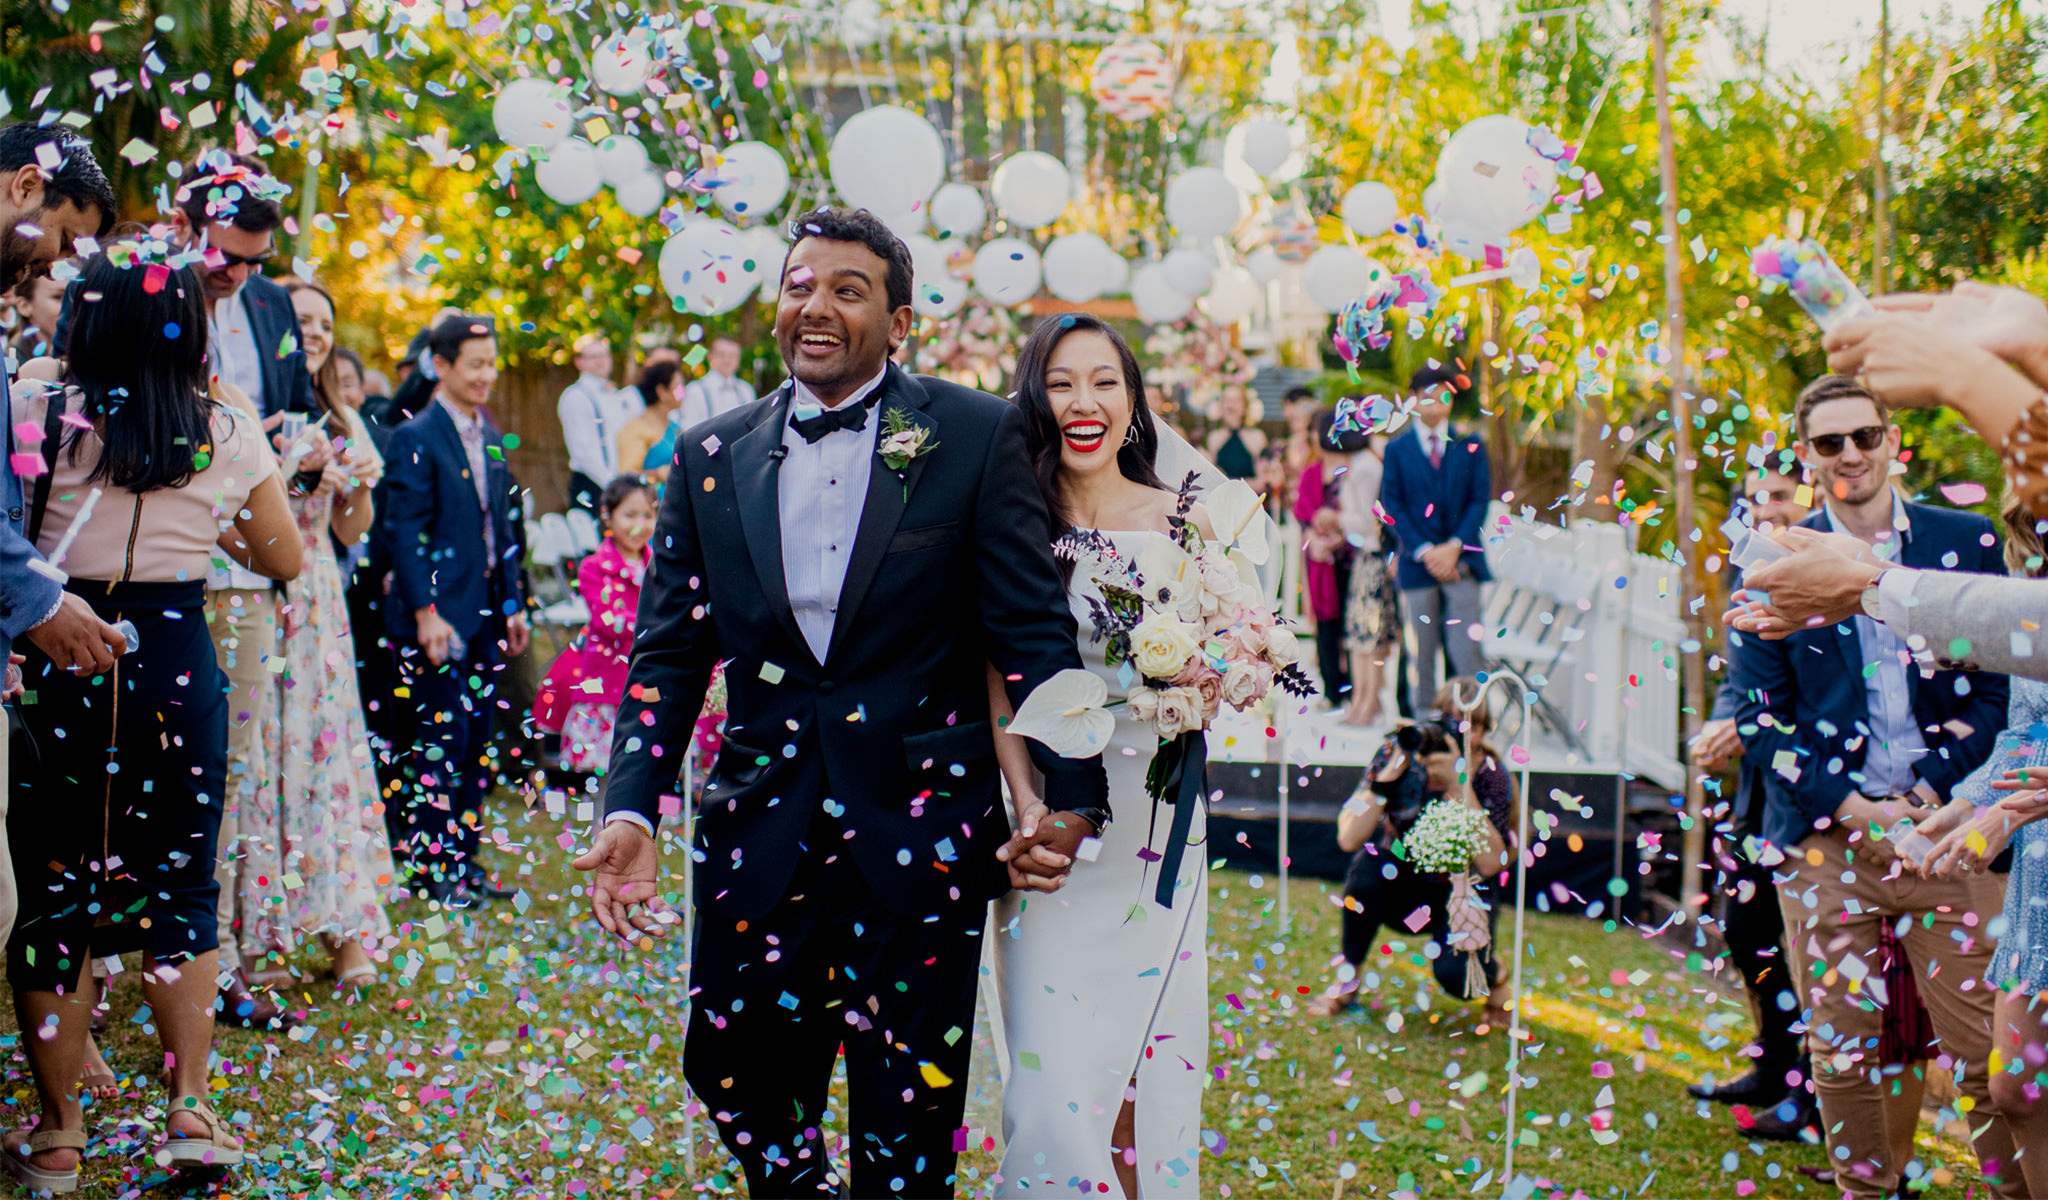 Interracial bride and groom laugh as they walk down their backyard wedding aisle through a shower of confetti